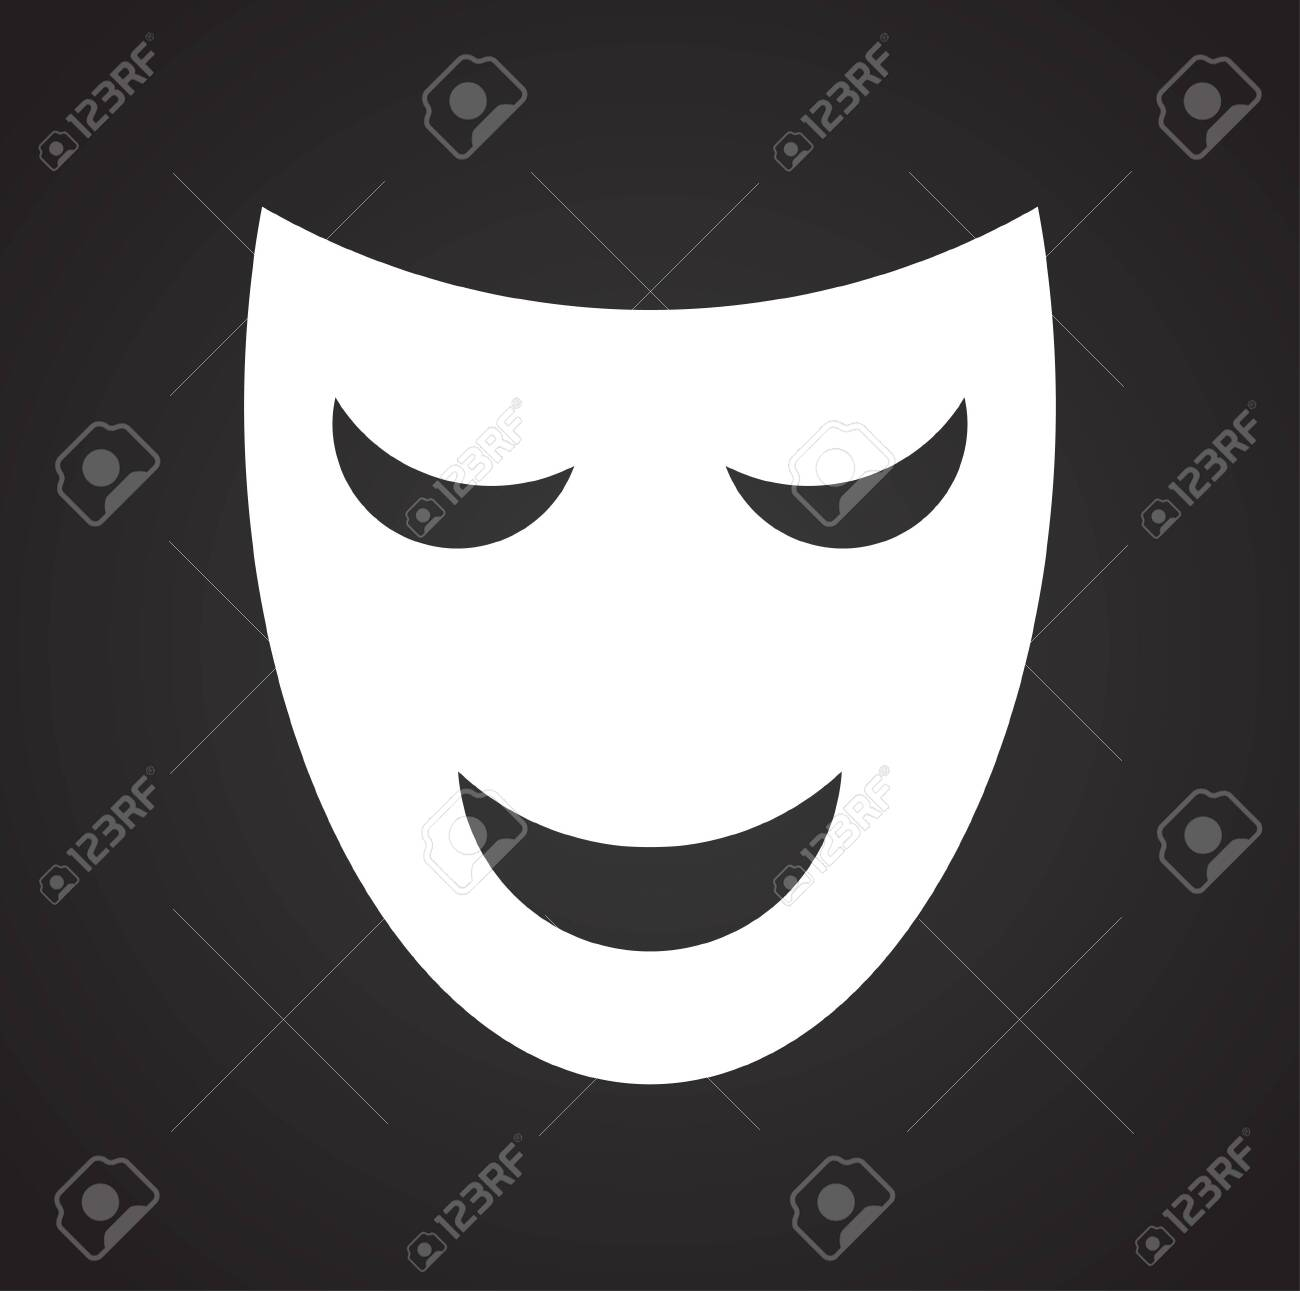 Masks icon on background for graphic and web design. Simple vector sign. Internet concept symbol for website button or mobile app. - 120661395